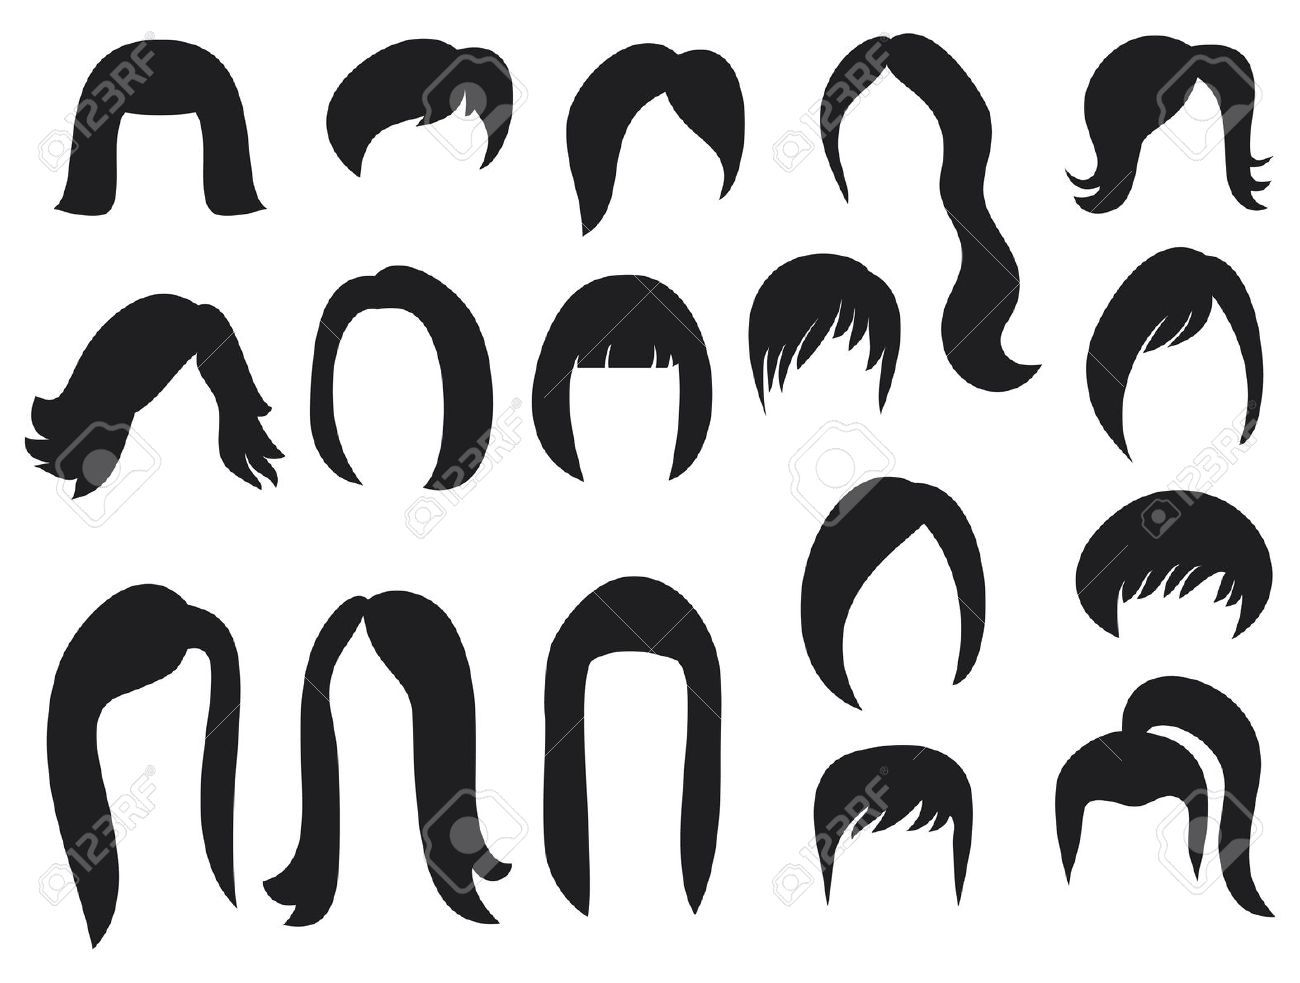 Hairstyle Vector: Big Hair Vector - Google Search